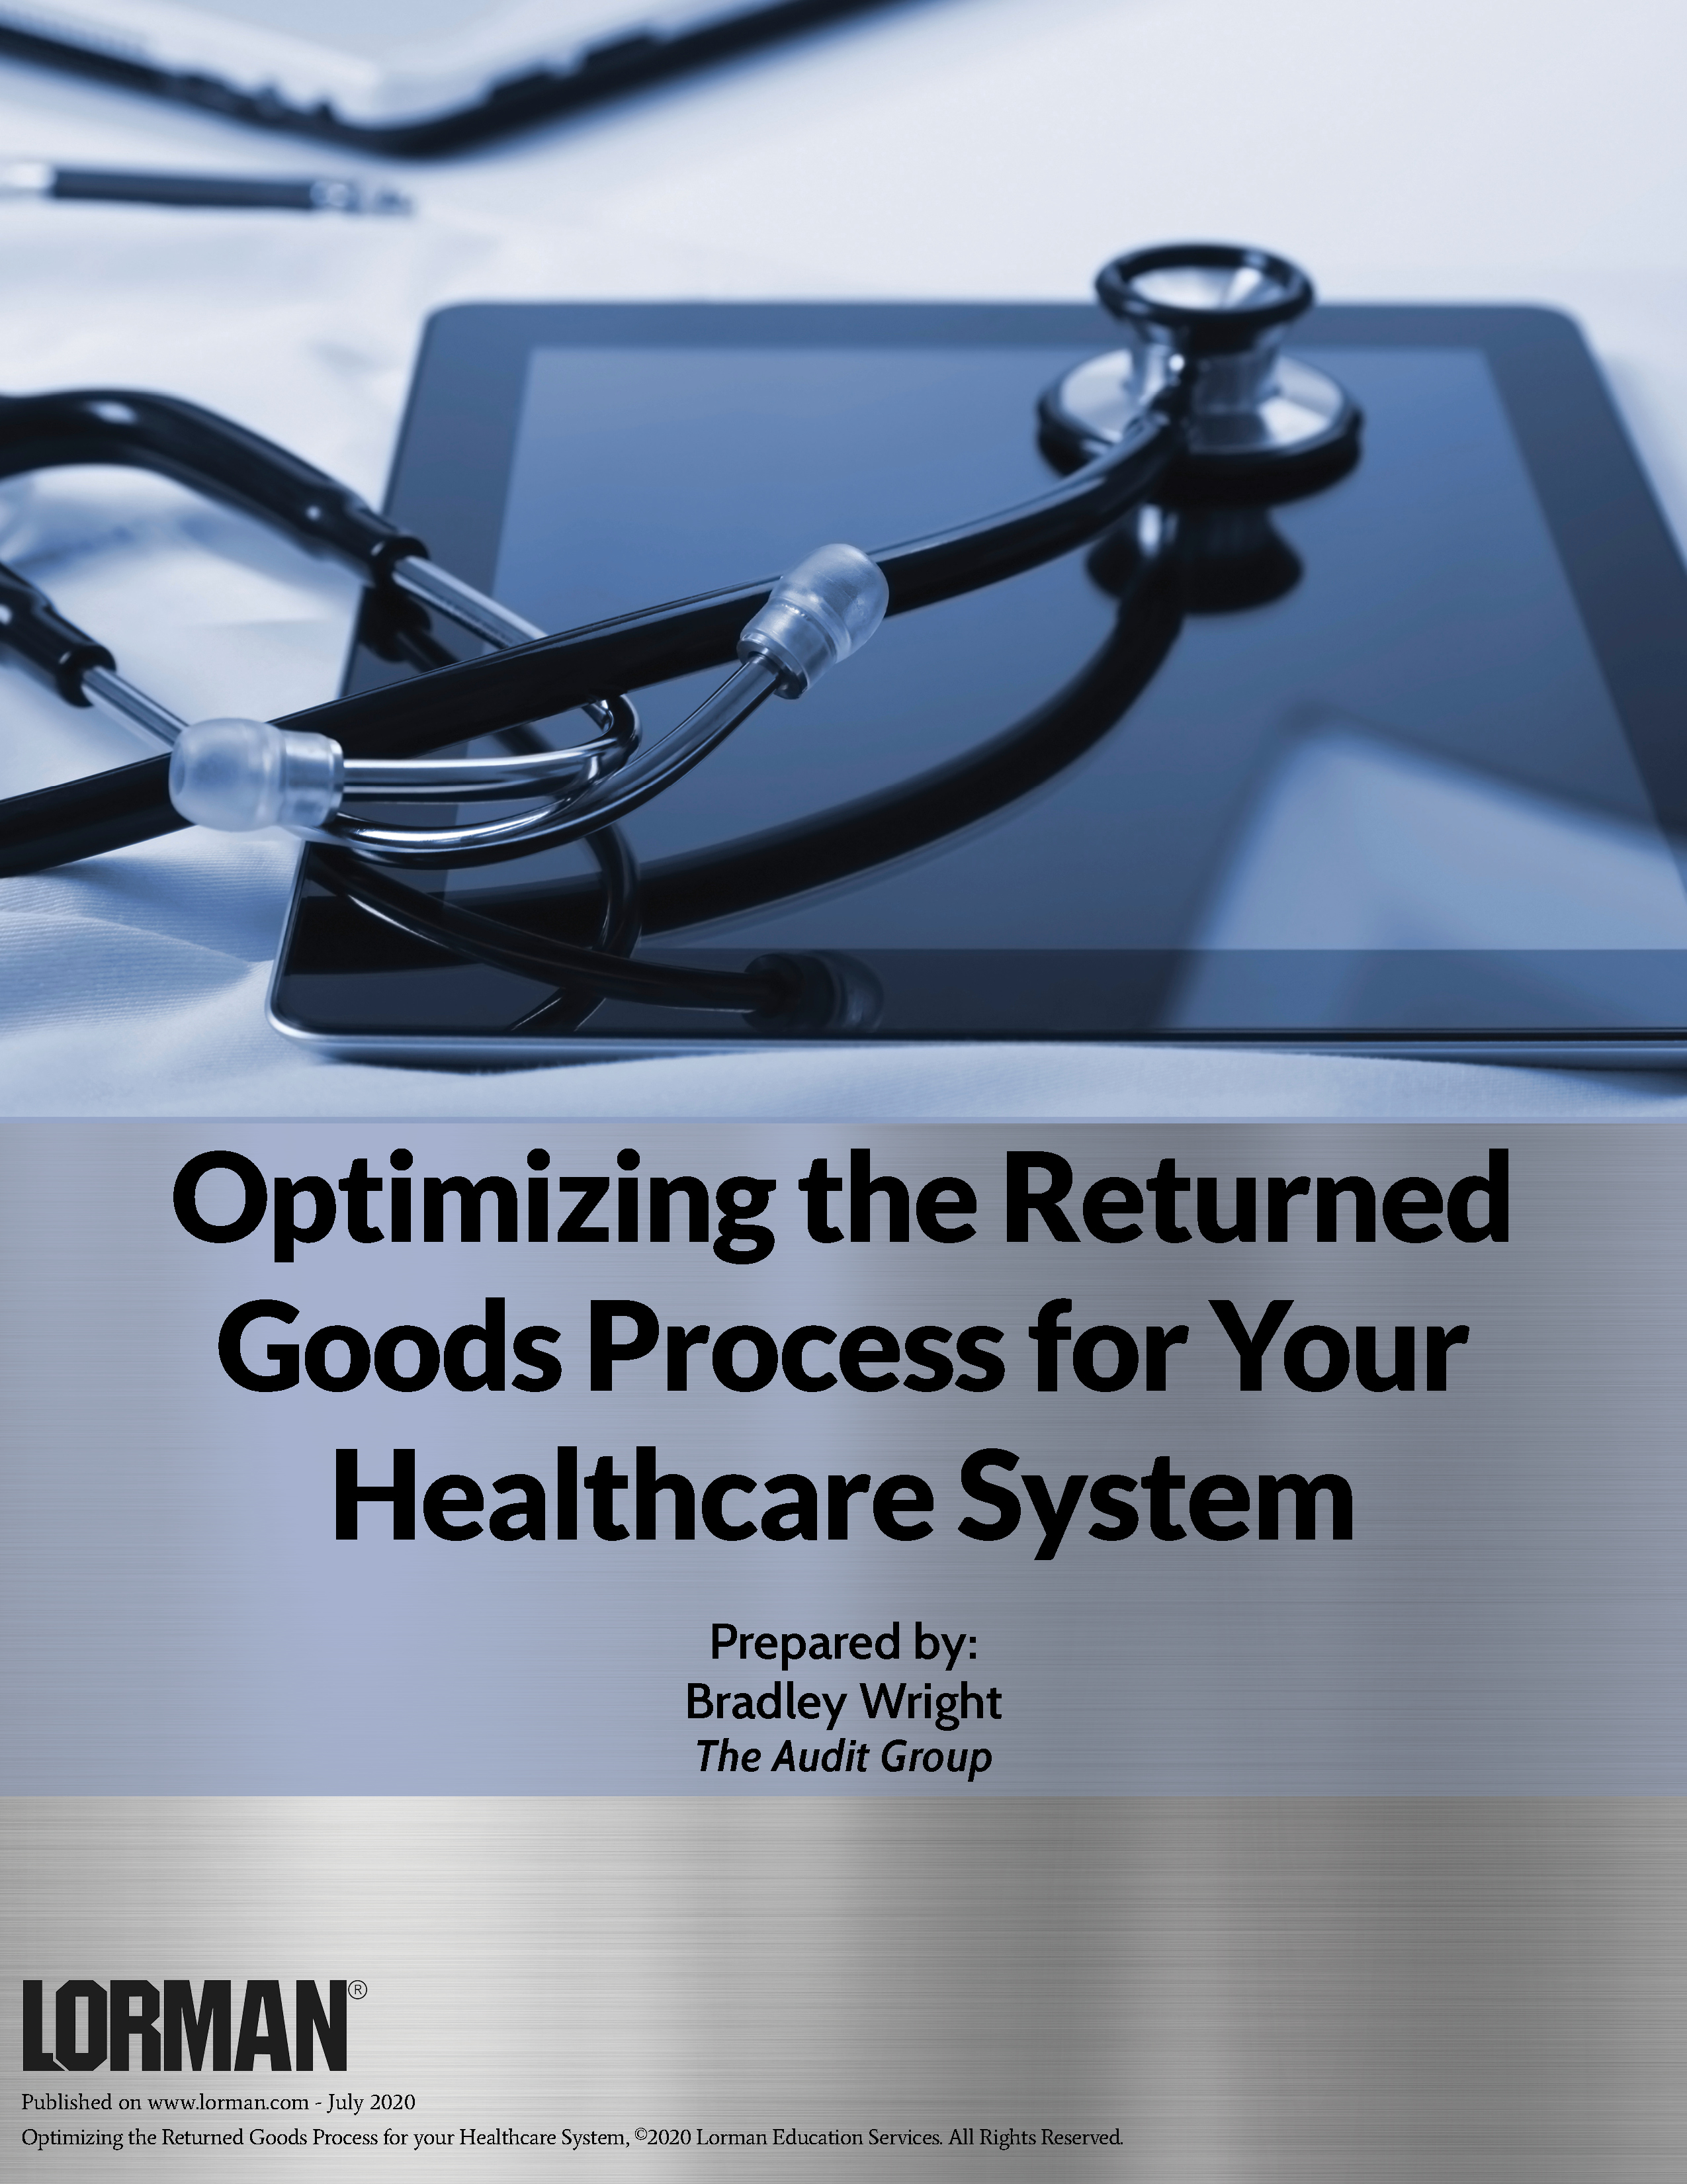 Optimizing the Returned Goods Process for Your Healthcare System